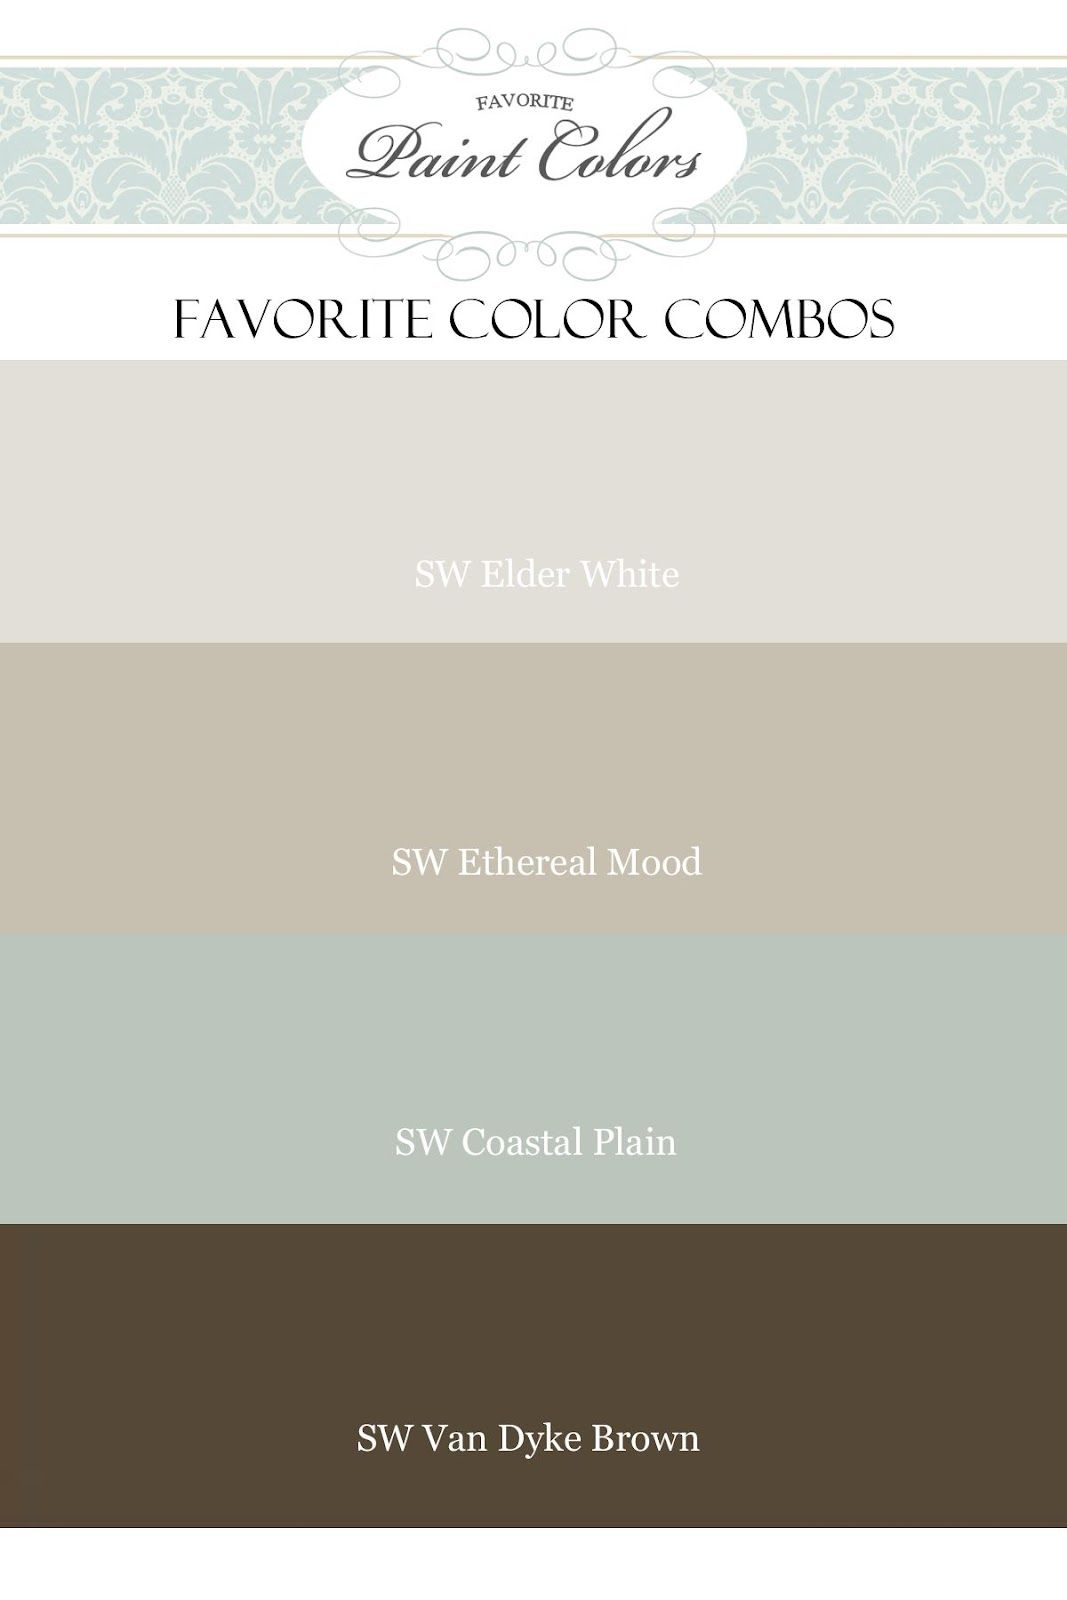 Fixer upper color schemes - Favorite Paint Colors Elder White Ethereal Mood Coastal Plain I Could Live Without Van Dyke Brown Sherwin Williams